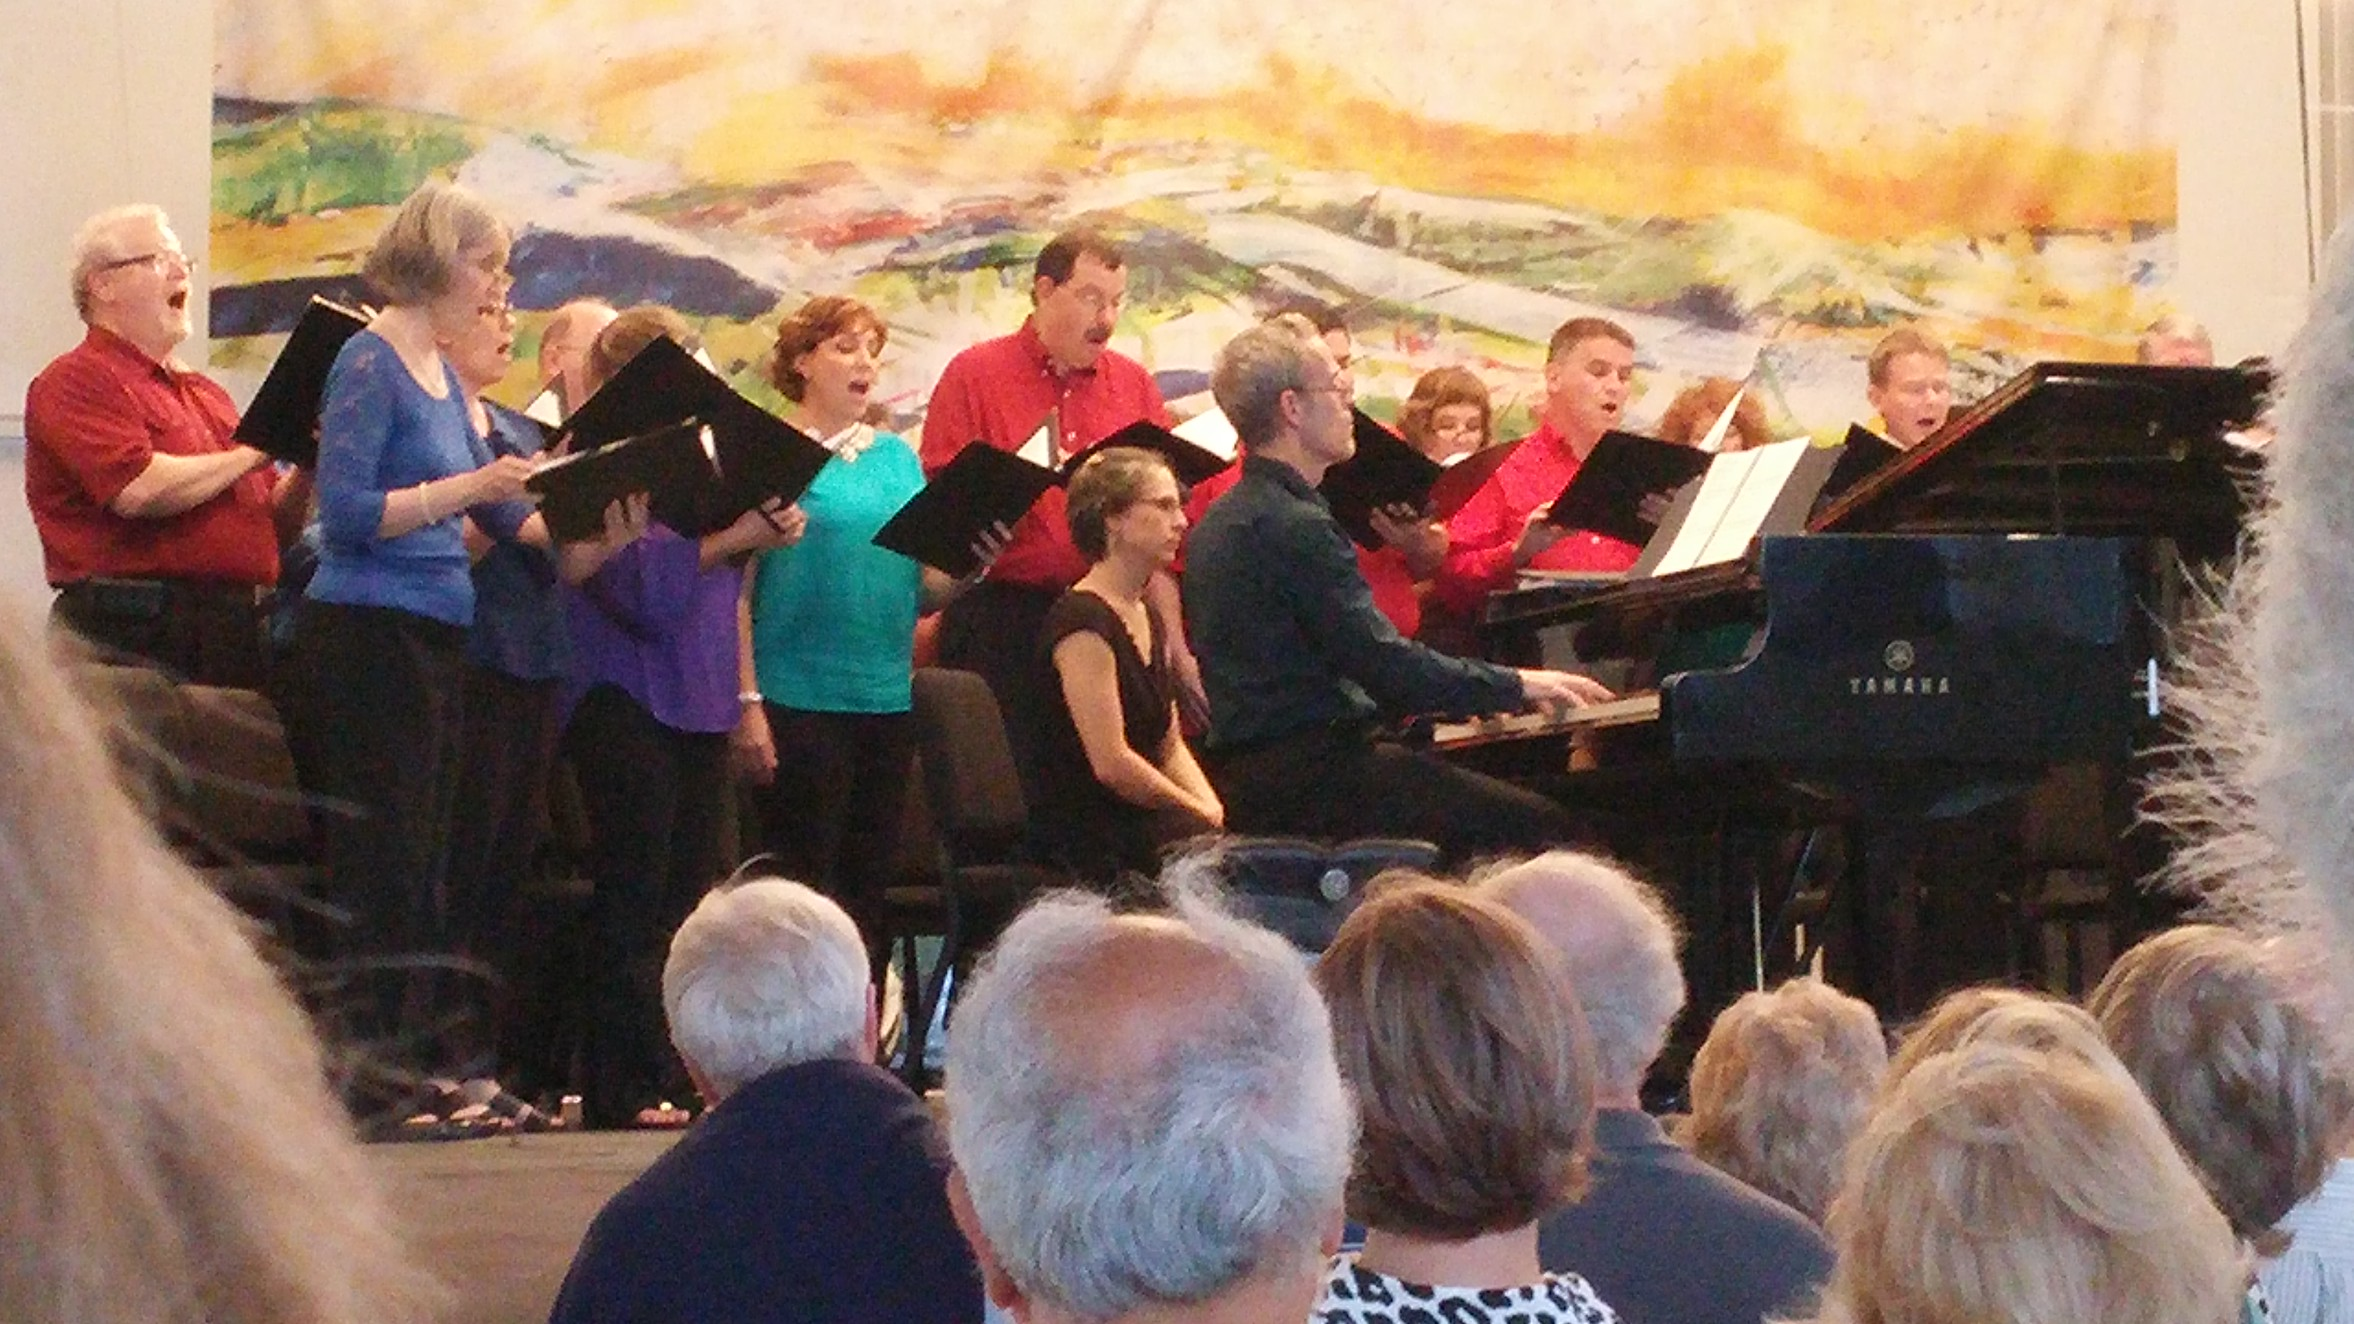 Richmond Symphony Chamber Chorus at the 2015 Wintergreen Summer Music Festival